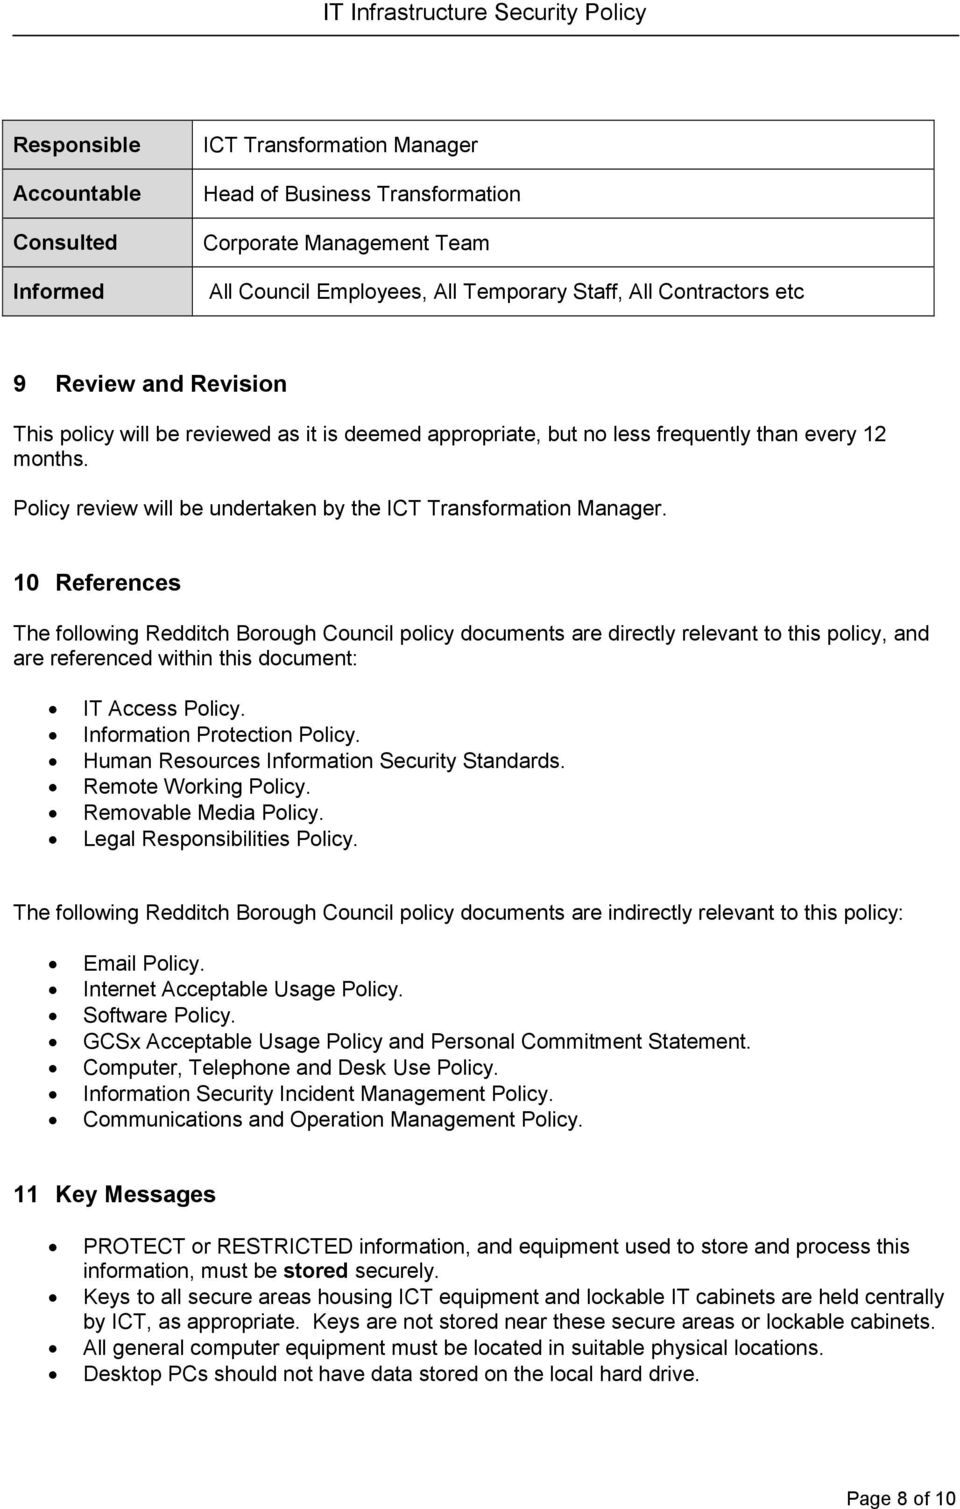 10 References The following Redditch Borough Council policy documents are directly relevant to this policy, and are referenced within this document: IT Access Policy. Information Protection Policy.